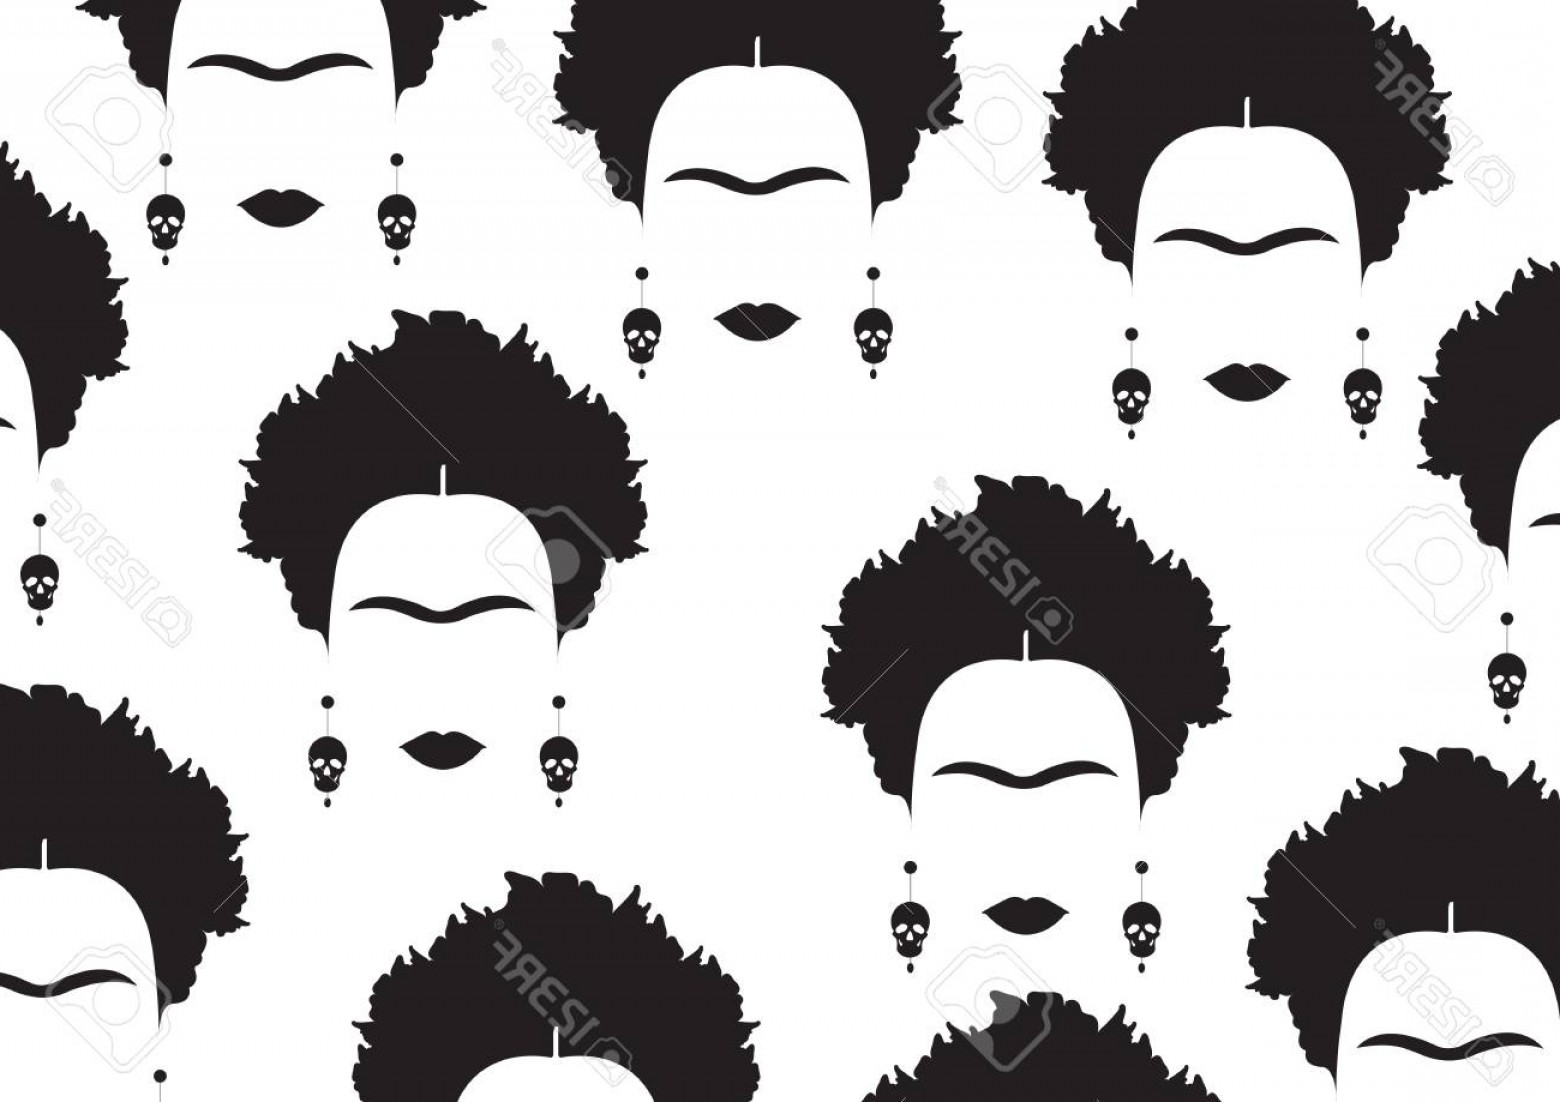 Frida Black And White Vector: Photostock Vector Background Black Portrait Of Mexican Or Spanish Woman Minimalist Frida With Earrings Skulls Vector I